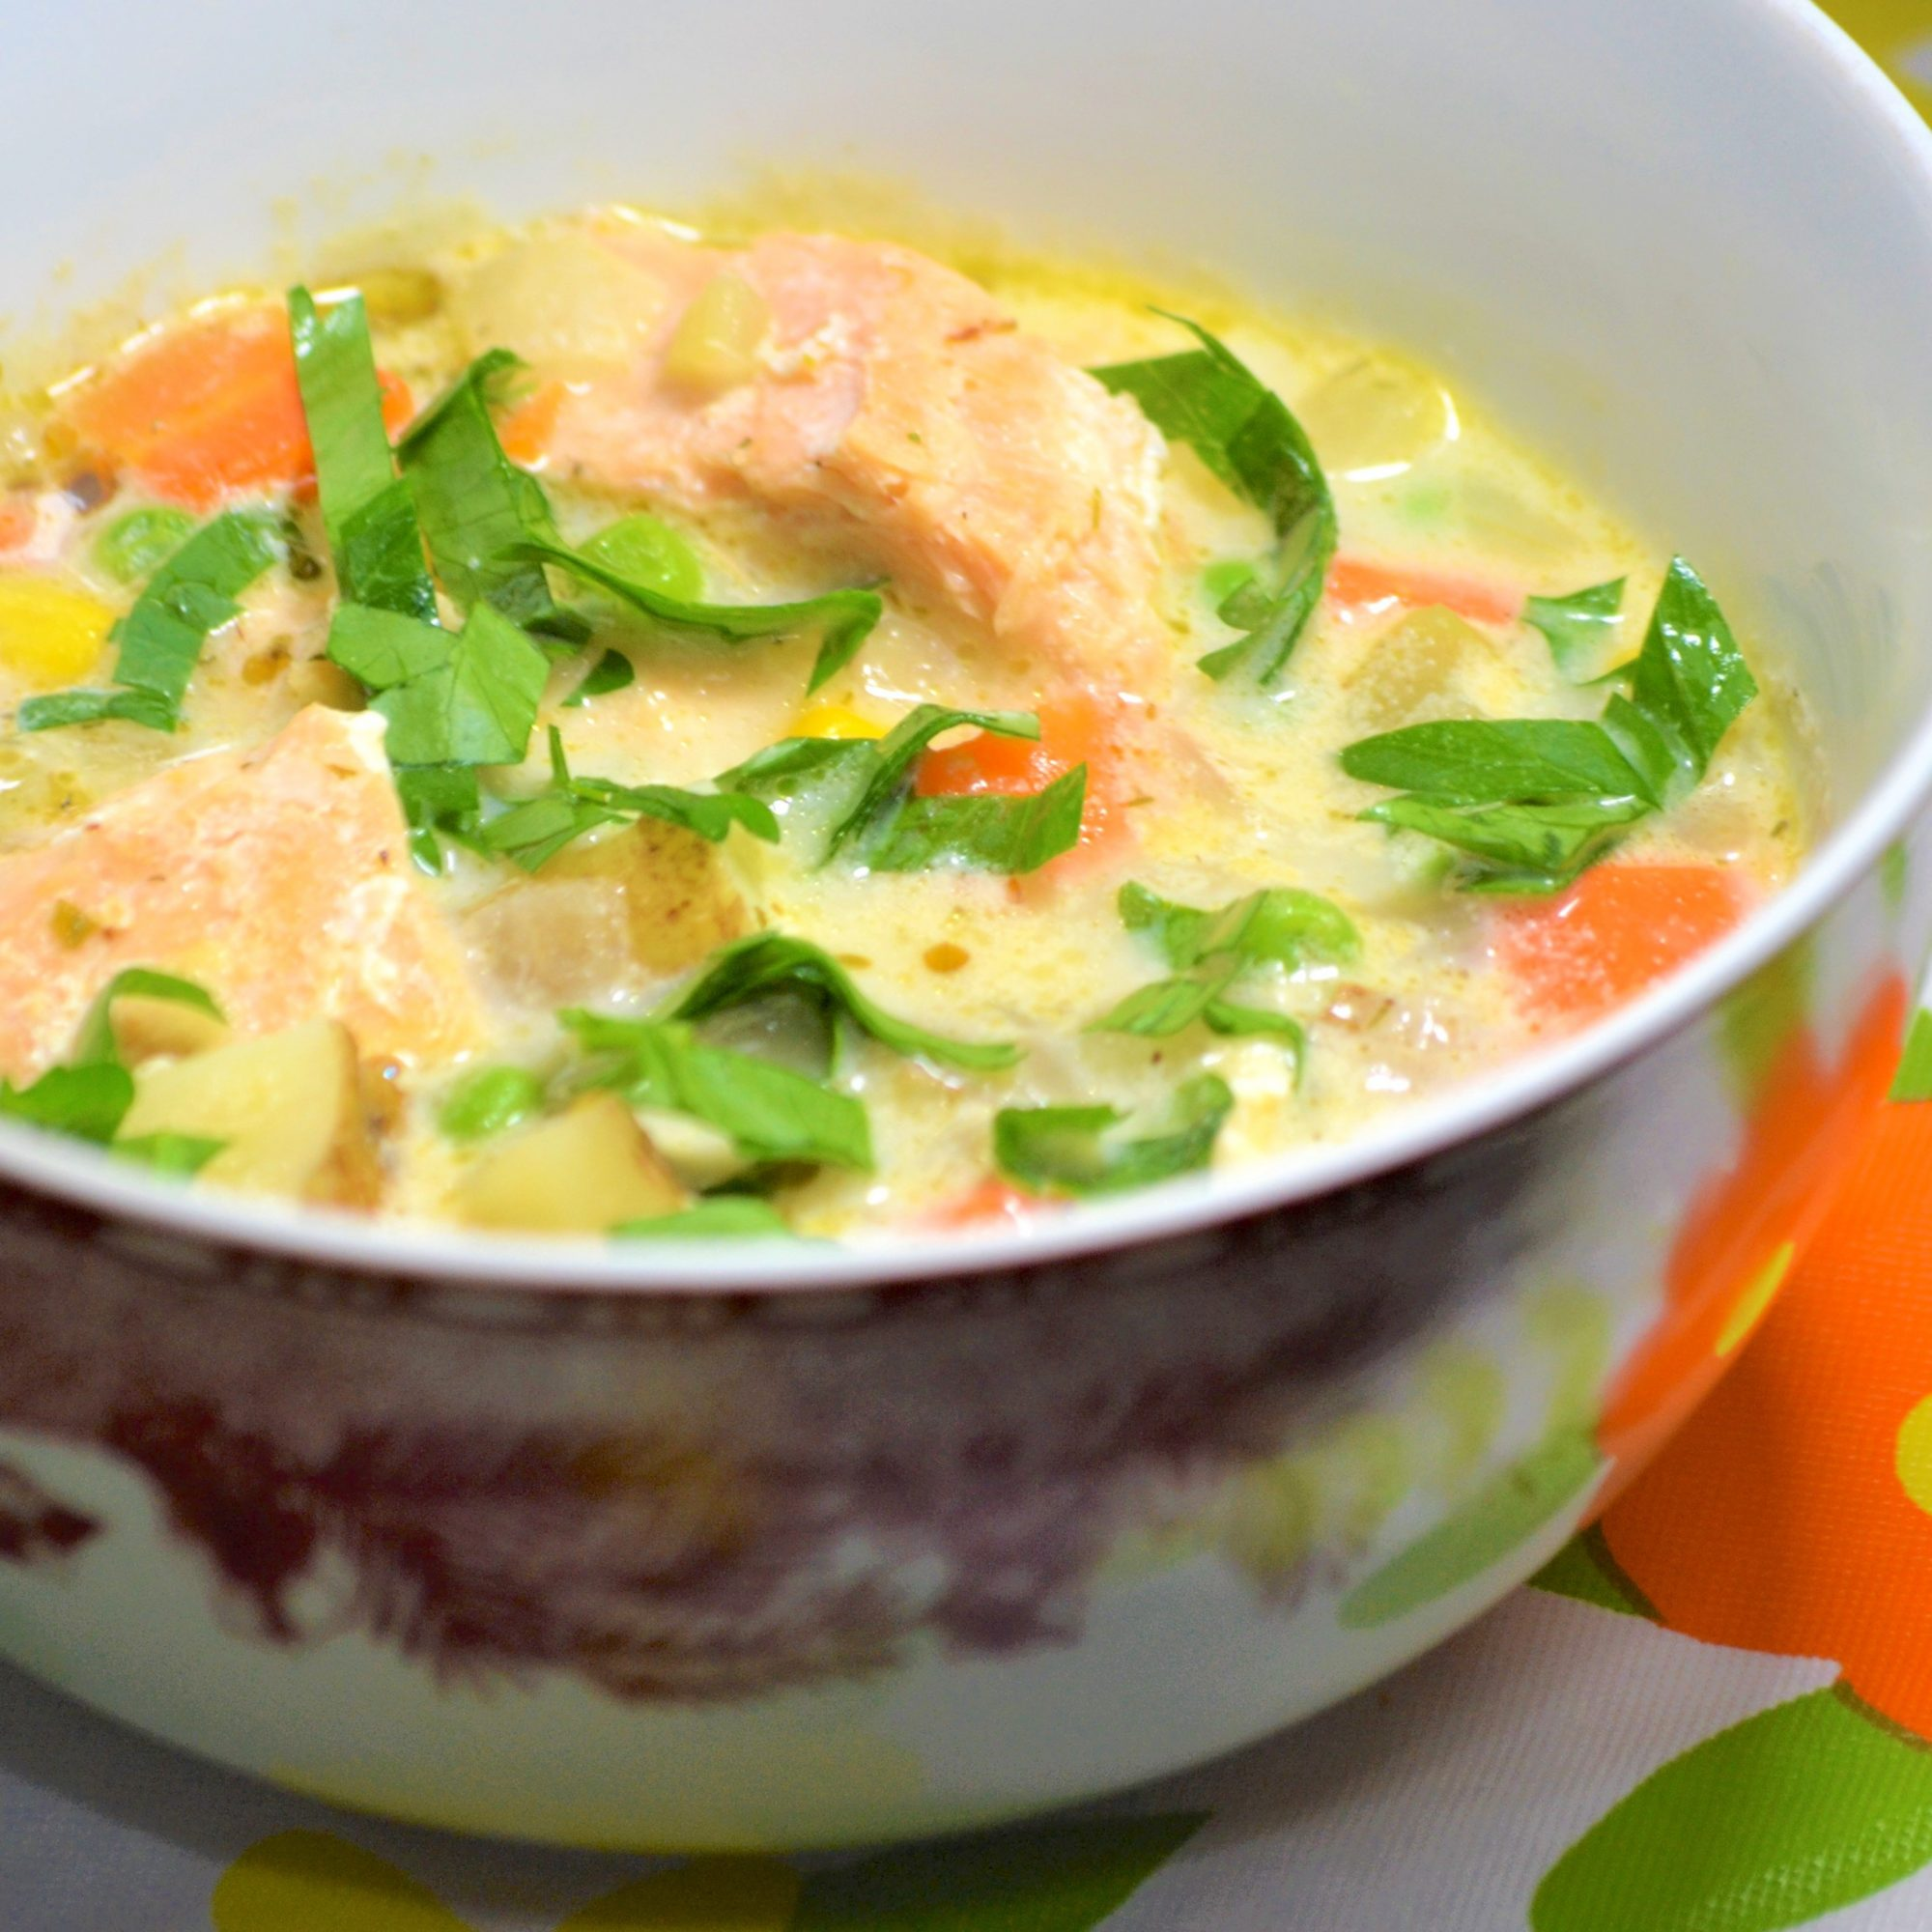 salmon chowder with carrots and potatoes